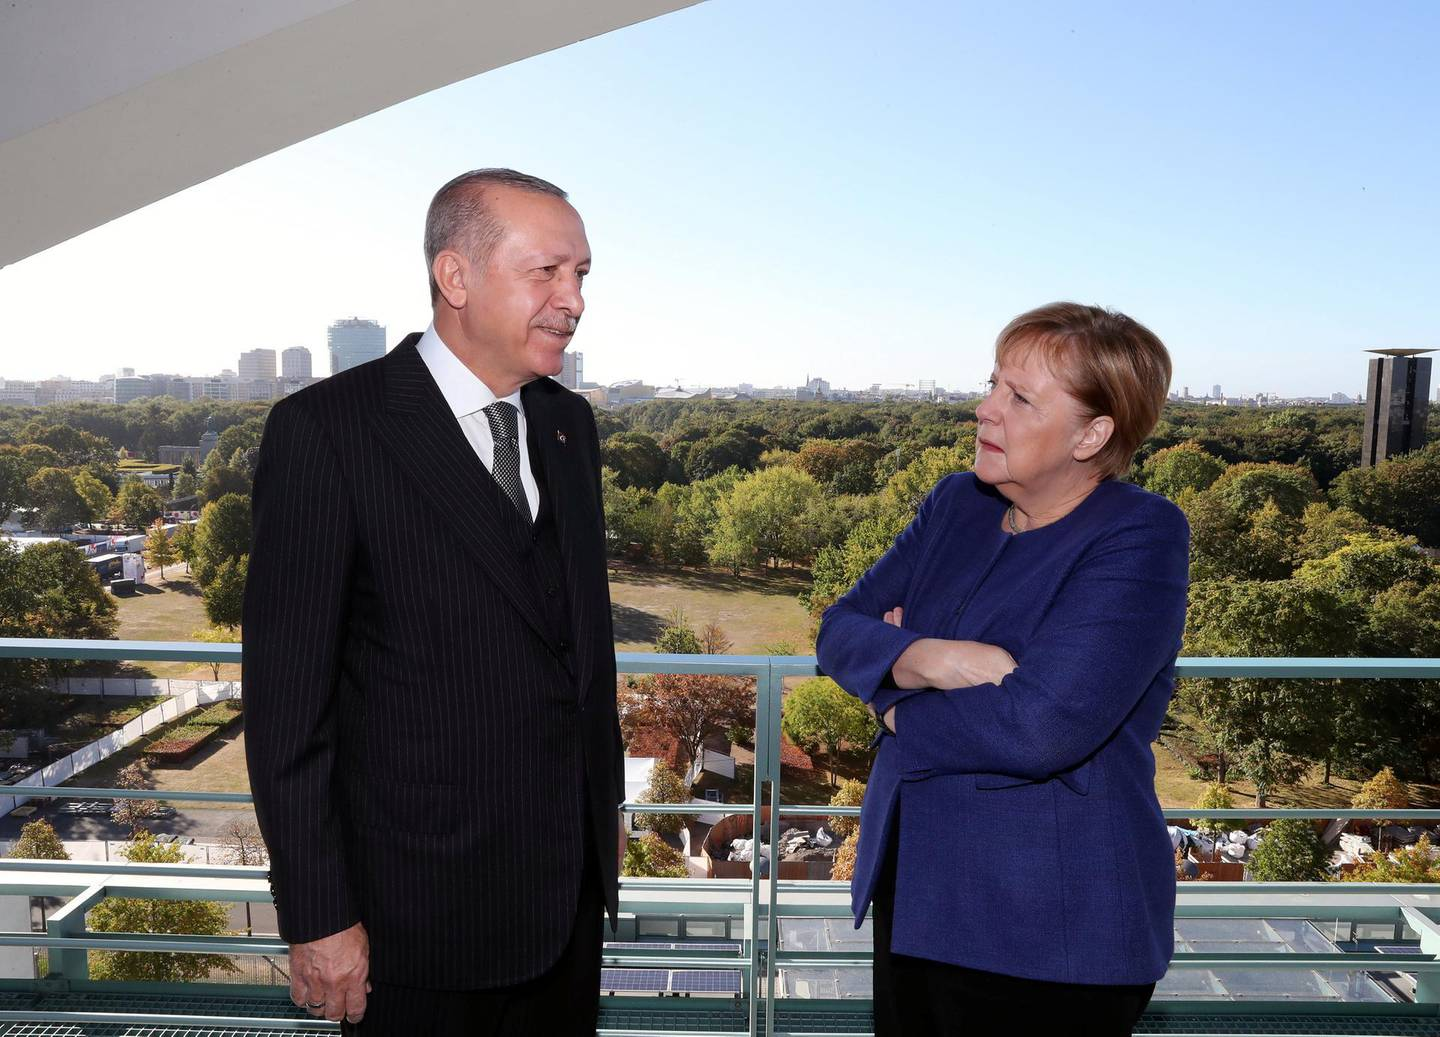 Turkish President Tayyip Erdogan meets with German Chancellor Angela Merkel in Berlin, Germany, September 29, 2018. Cem Oksuz/Presidential Press Office/Handout via REUTERS ATTENTION EDITORS - THIS PICTURE WAS PROVIDED BY A THIRD PARTY. NO RESALES. NO ARCHIVE.